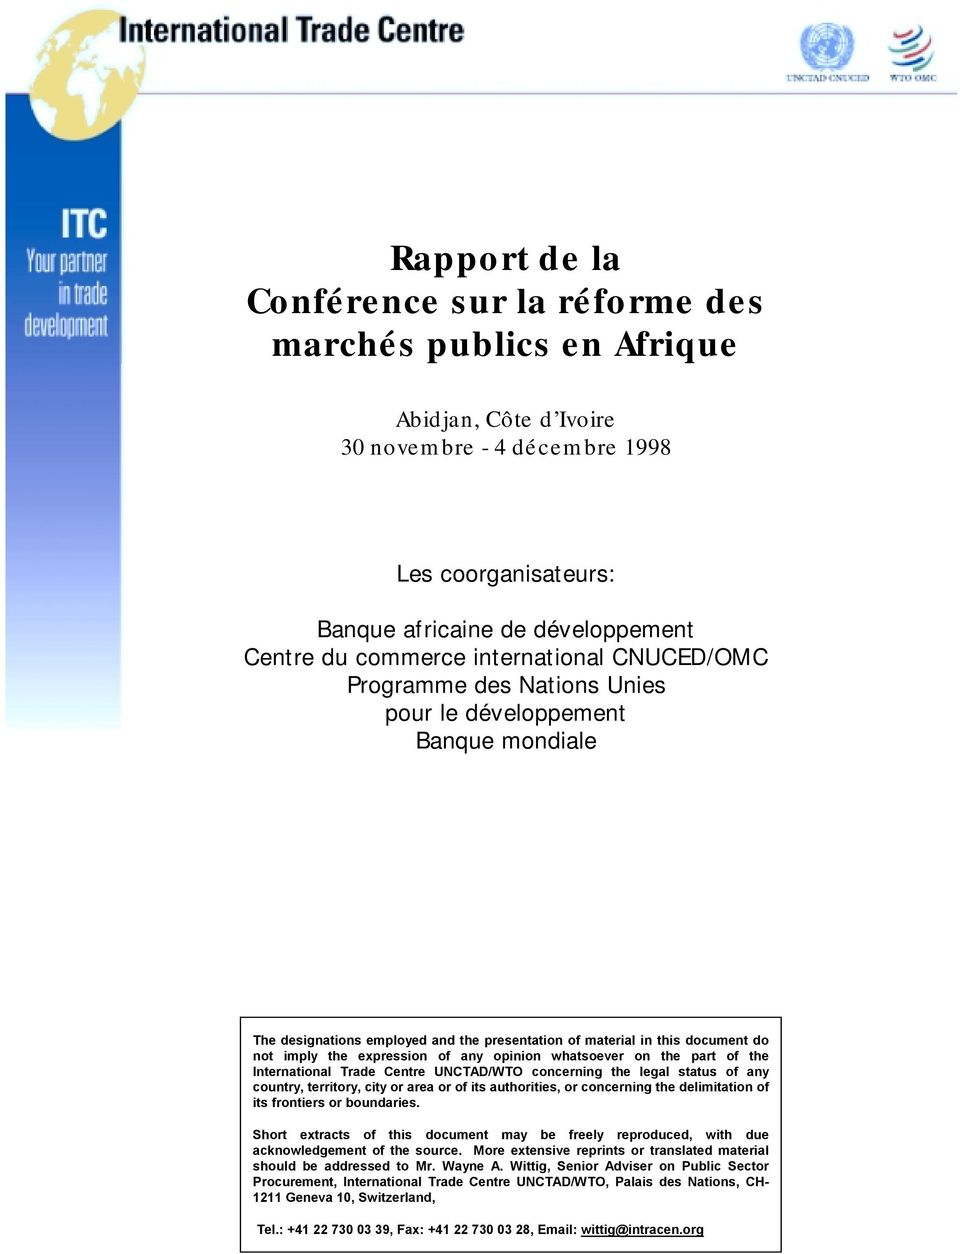 any opinion whatsoever on the part of the International Trade Centre UNCTAD/WTO concerning the legal status of any country, territory, city or area or of its authorities, or concerning the